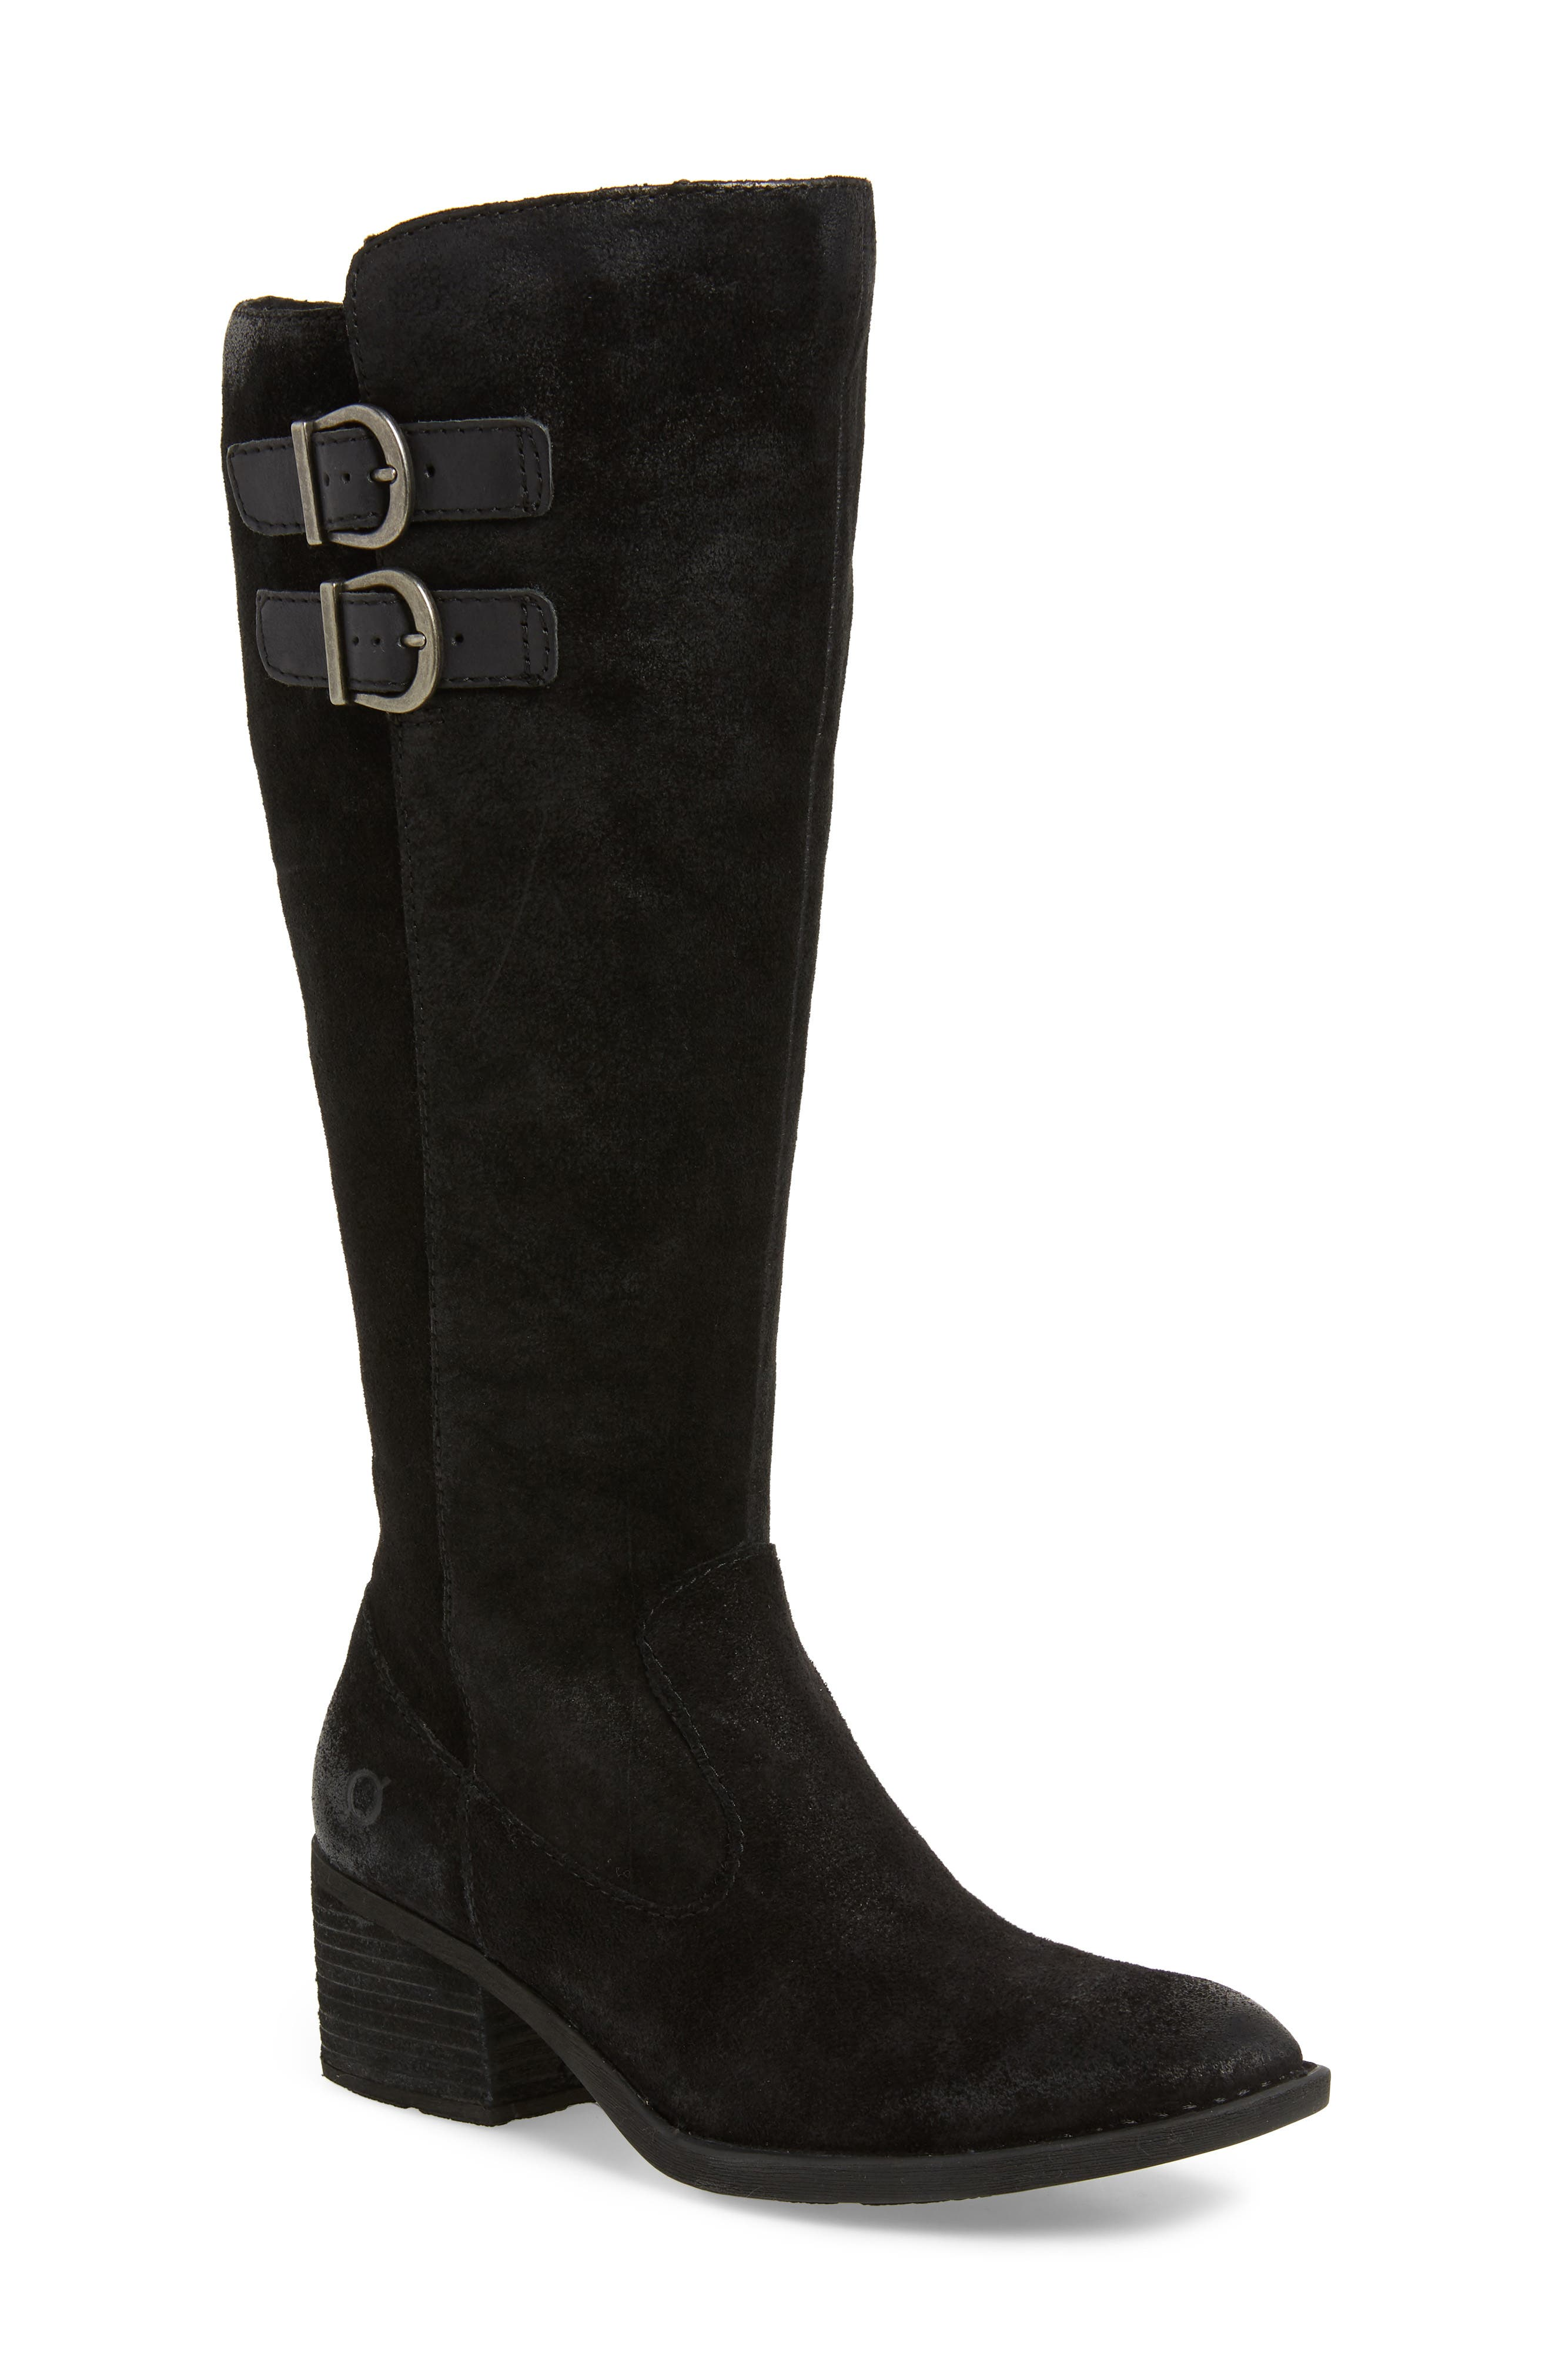 B?rn Basil Knee High Boot Wide Calf- Black